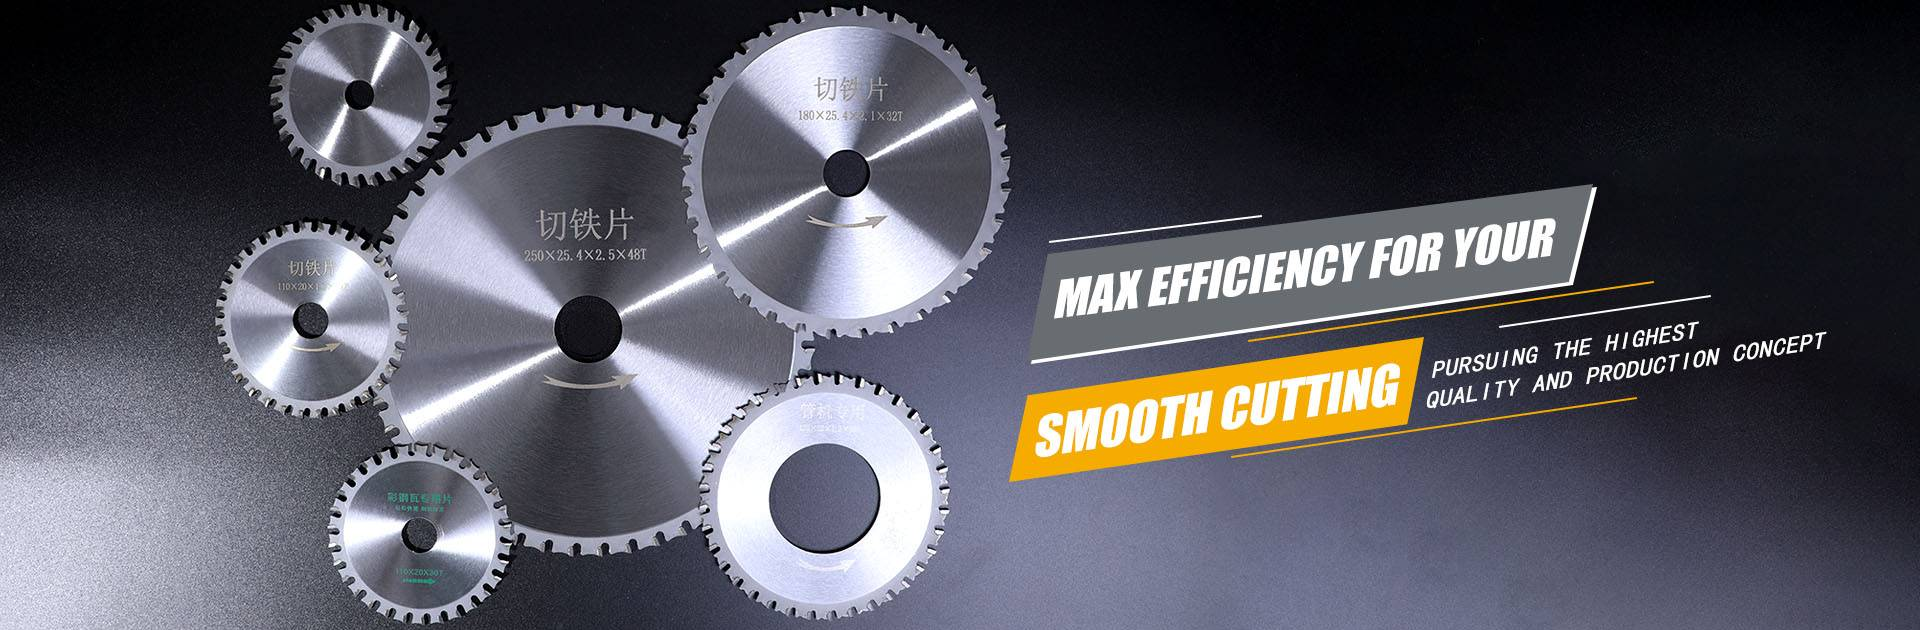 Max efficiency for your smooth cutting